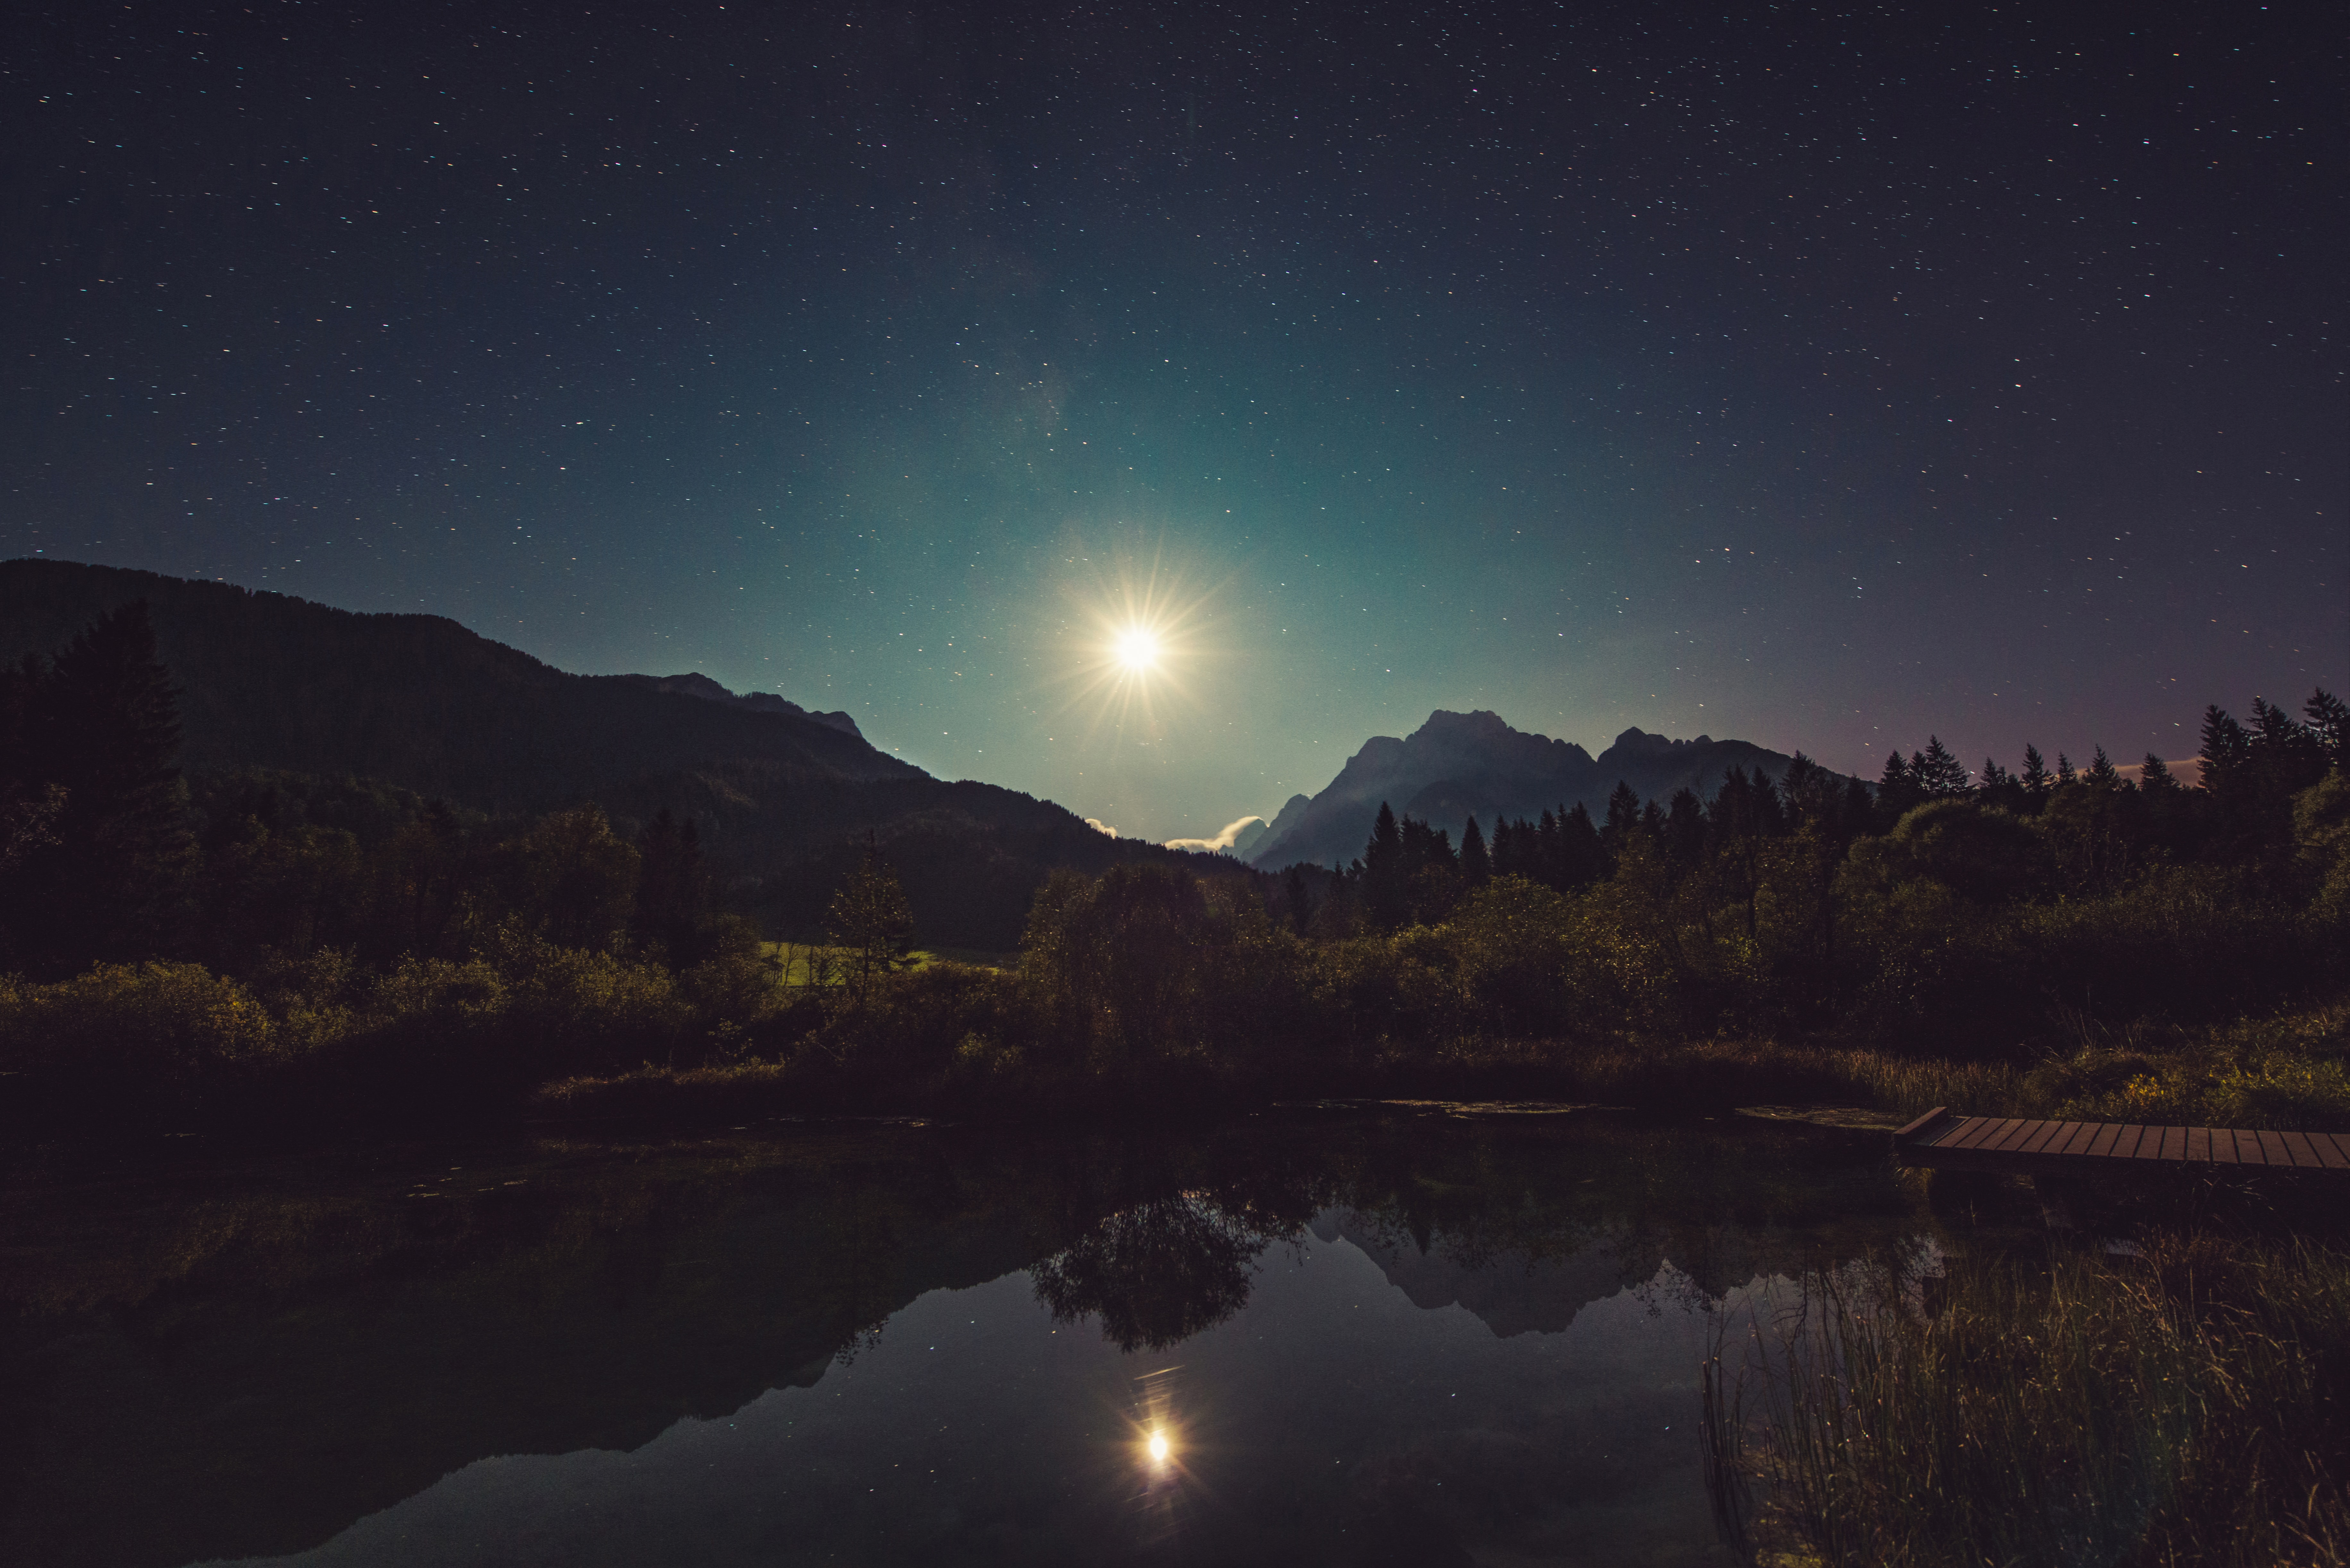 The mountains, forest, and lake lit up by the moon and starry sky in Zelenci